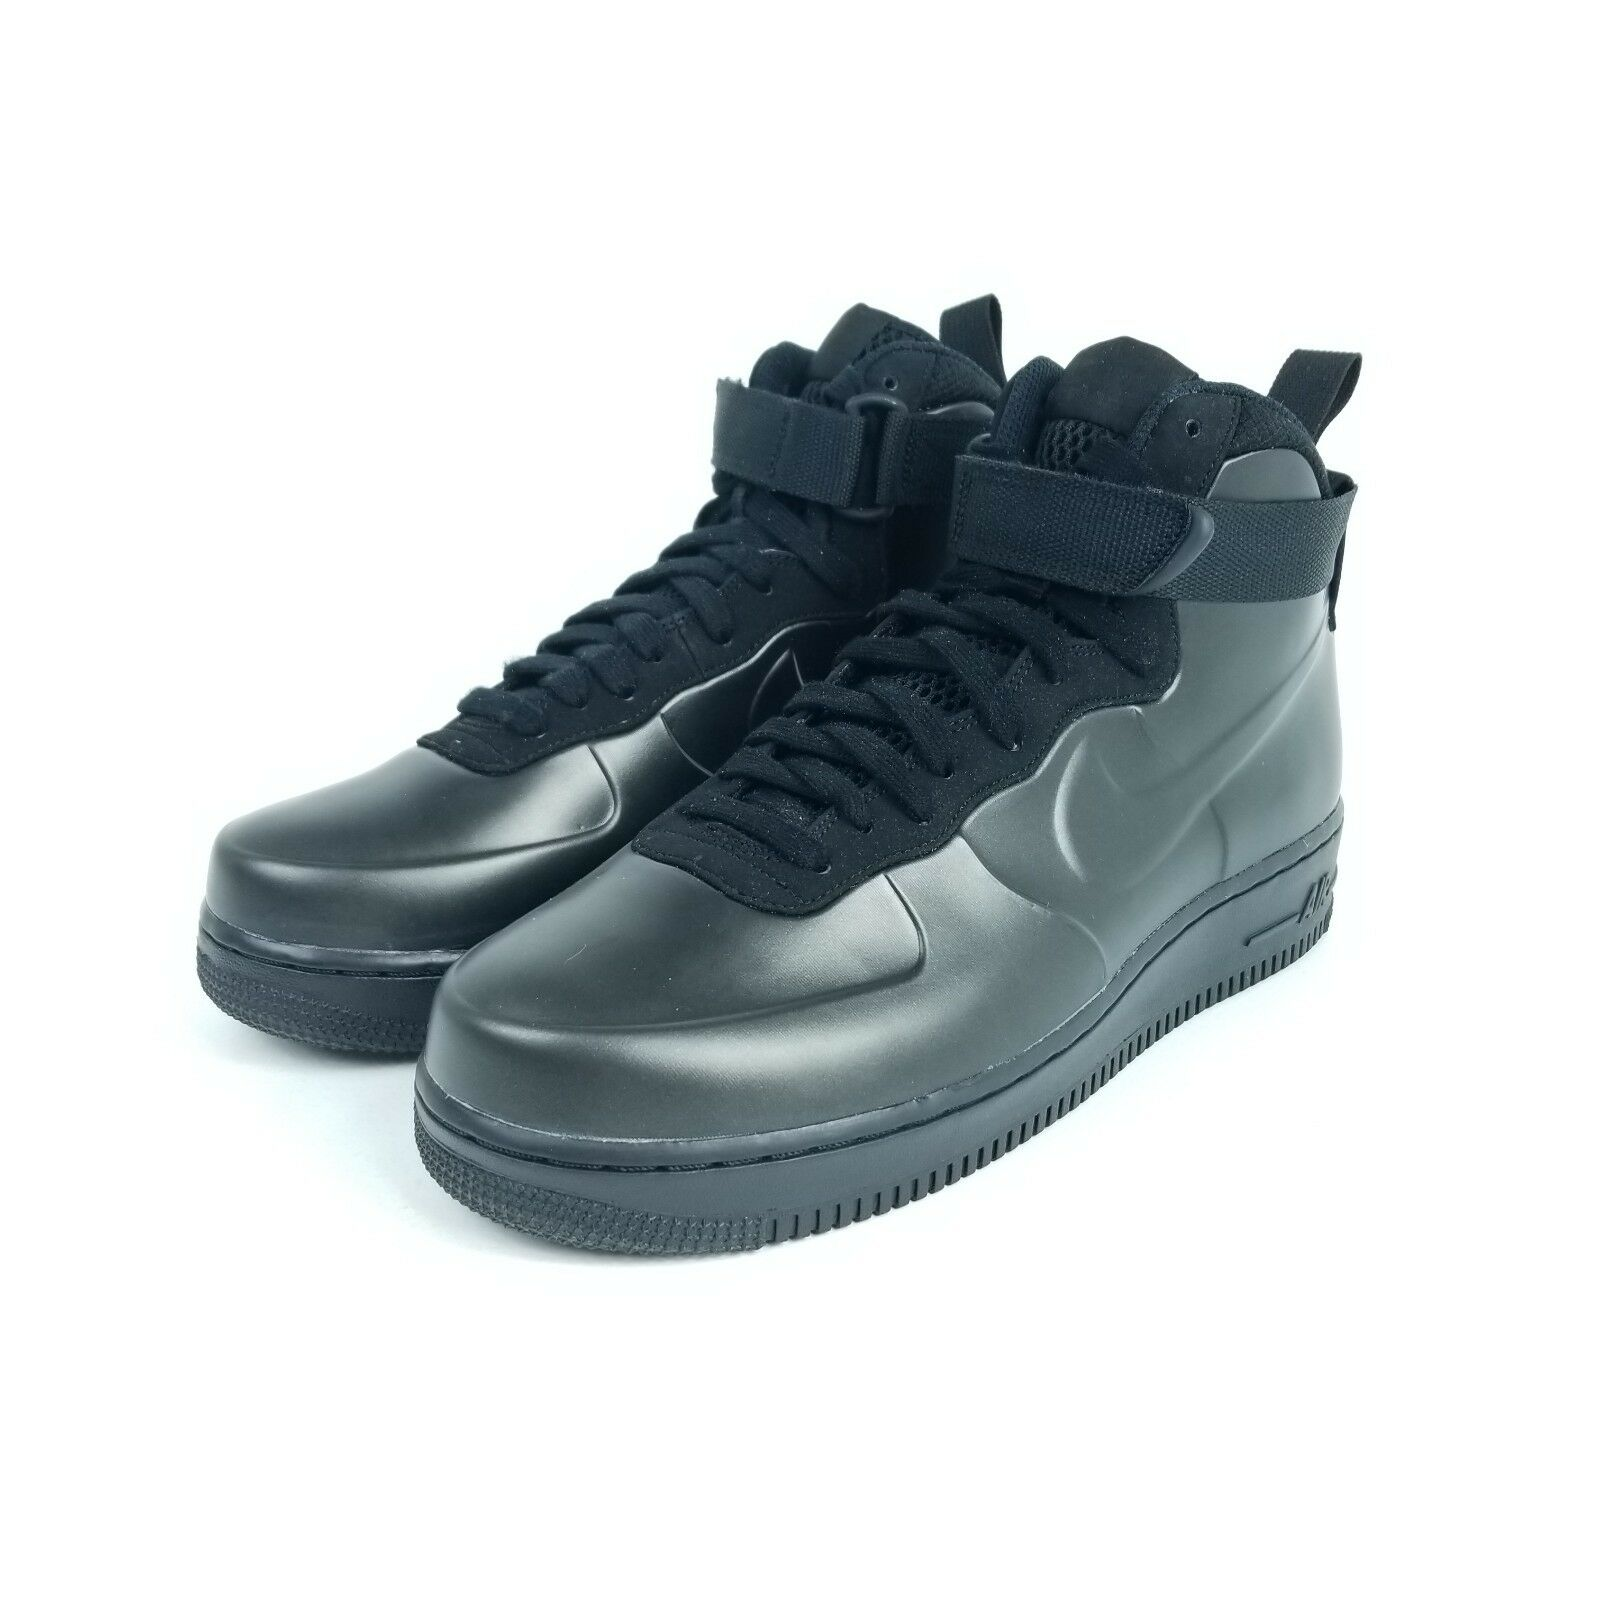 Casual wild NIKE Air Force 1 Foamposite Cup Mens Multi Comfortable